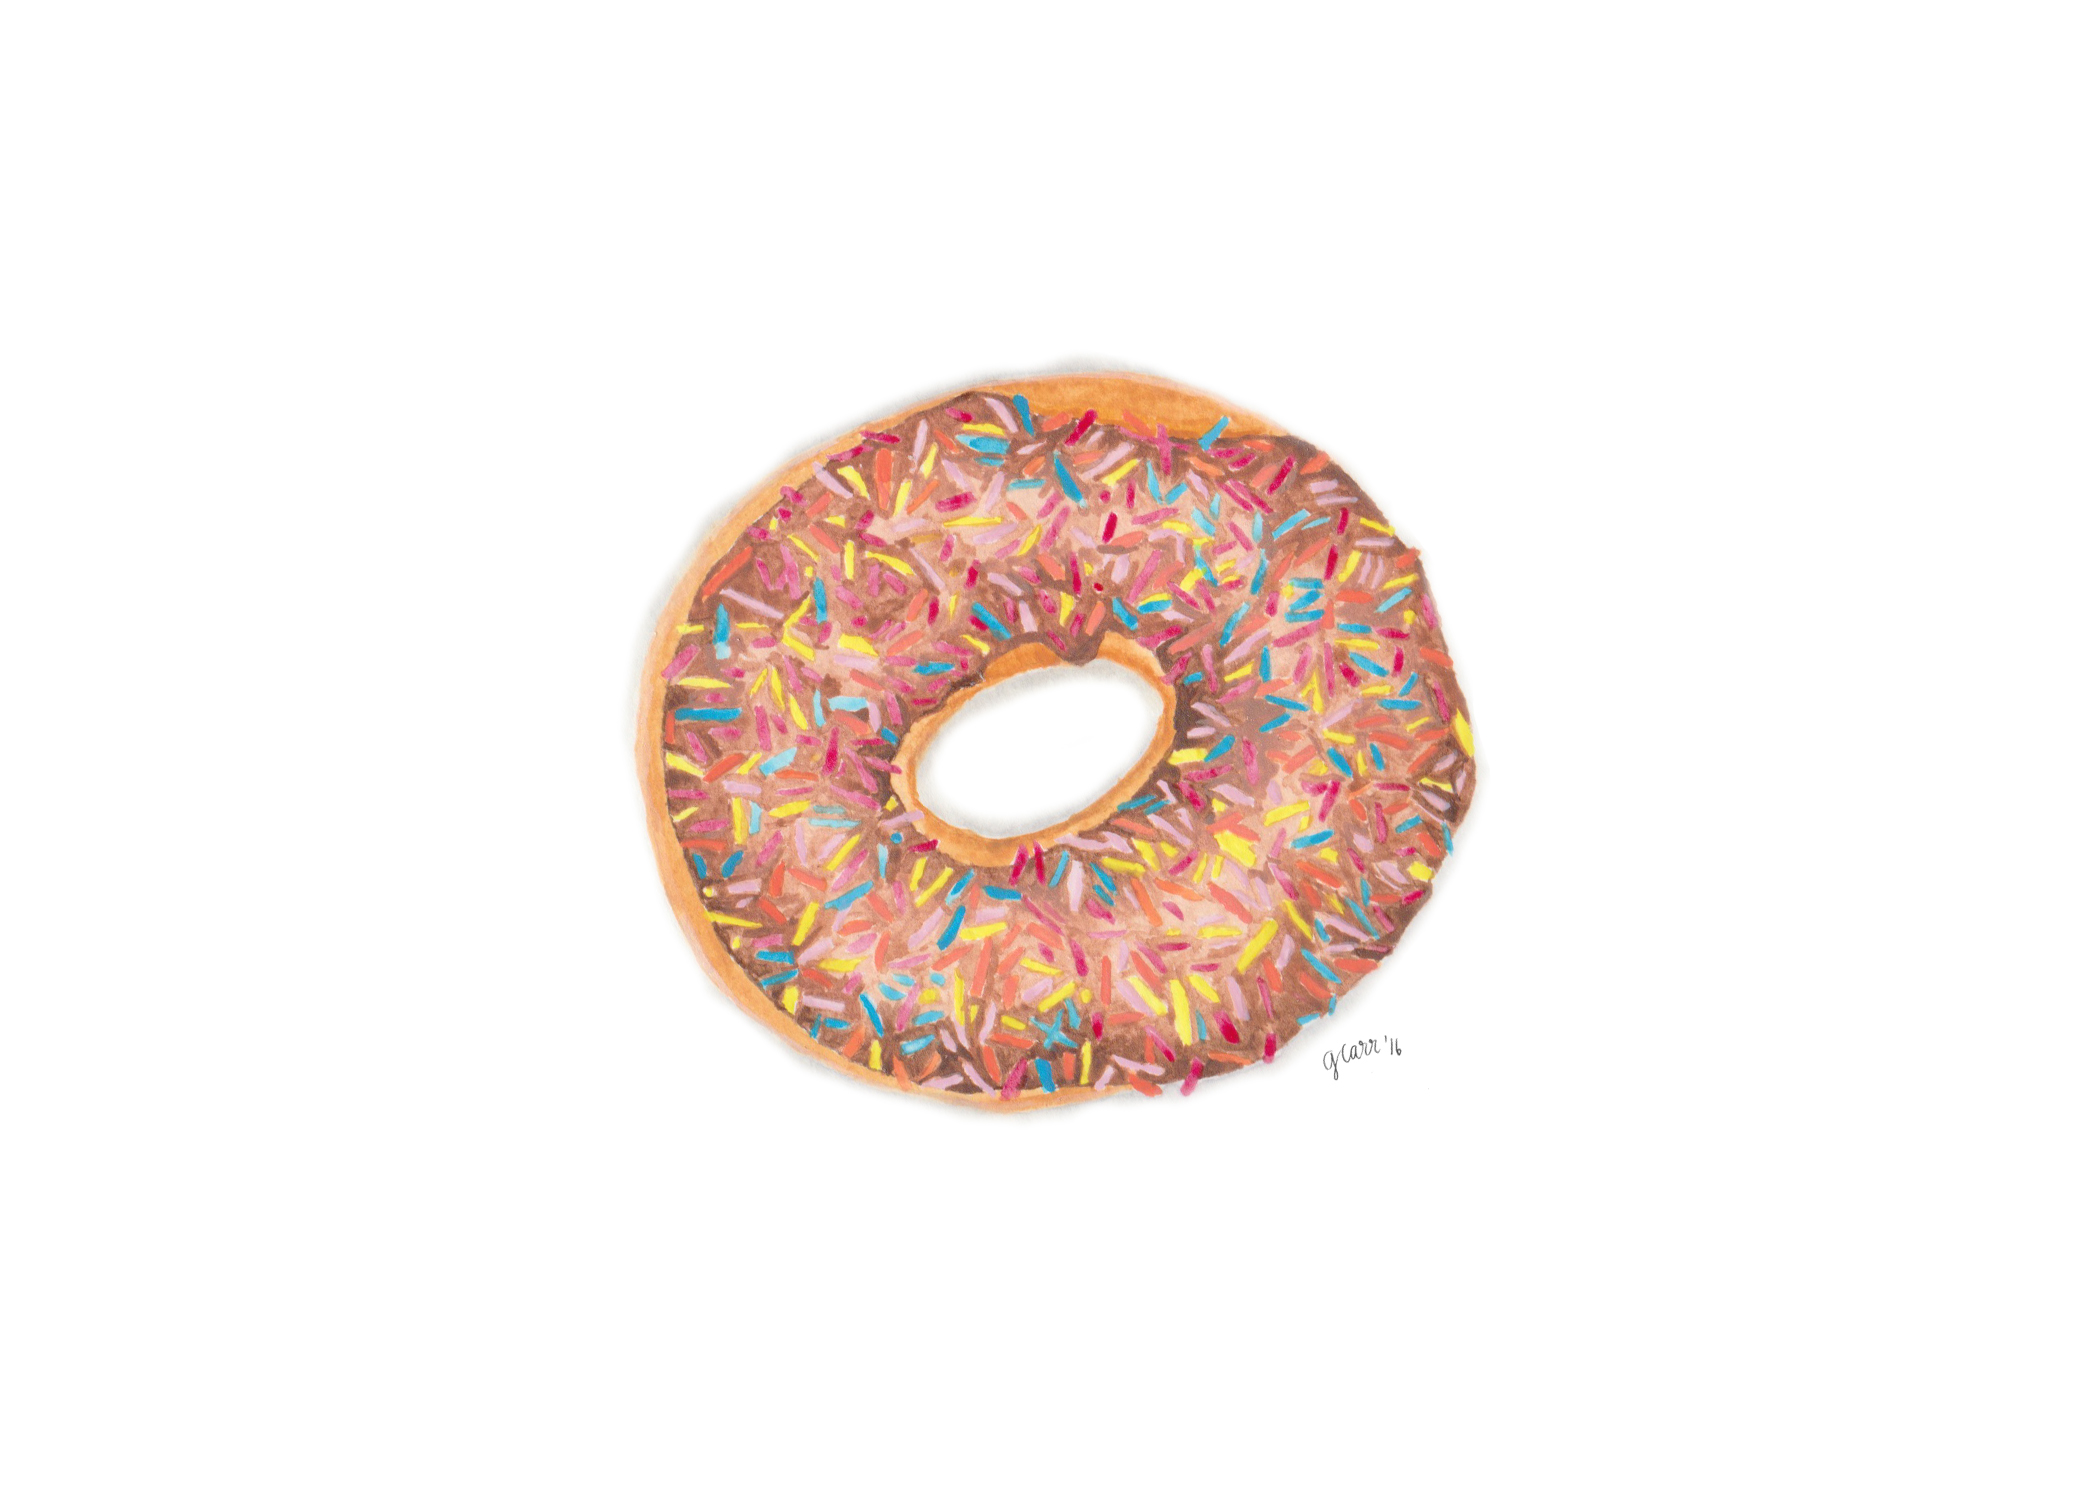 Sprinkle Donut Watercolour Illustration